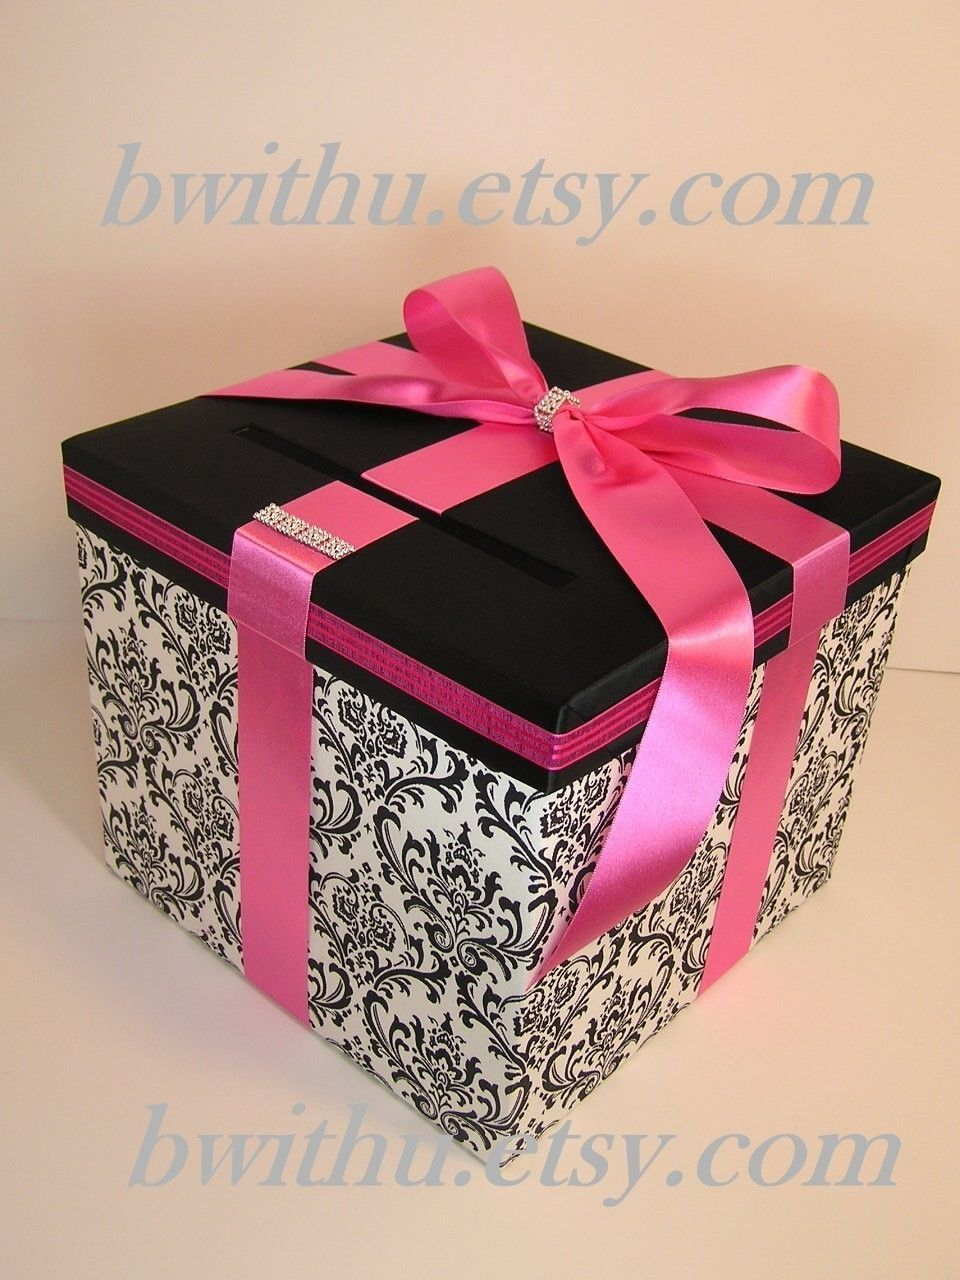 Damask Wedding Card Box Gift Card Box Money Card By Bwithustudio 62 00 Money Card Box Gift Card Boxes Card Box Wedding